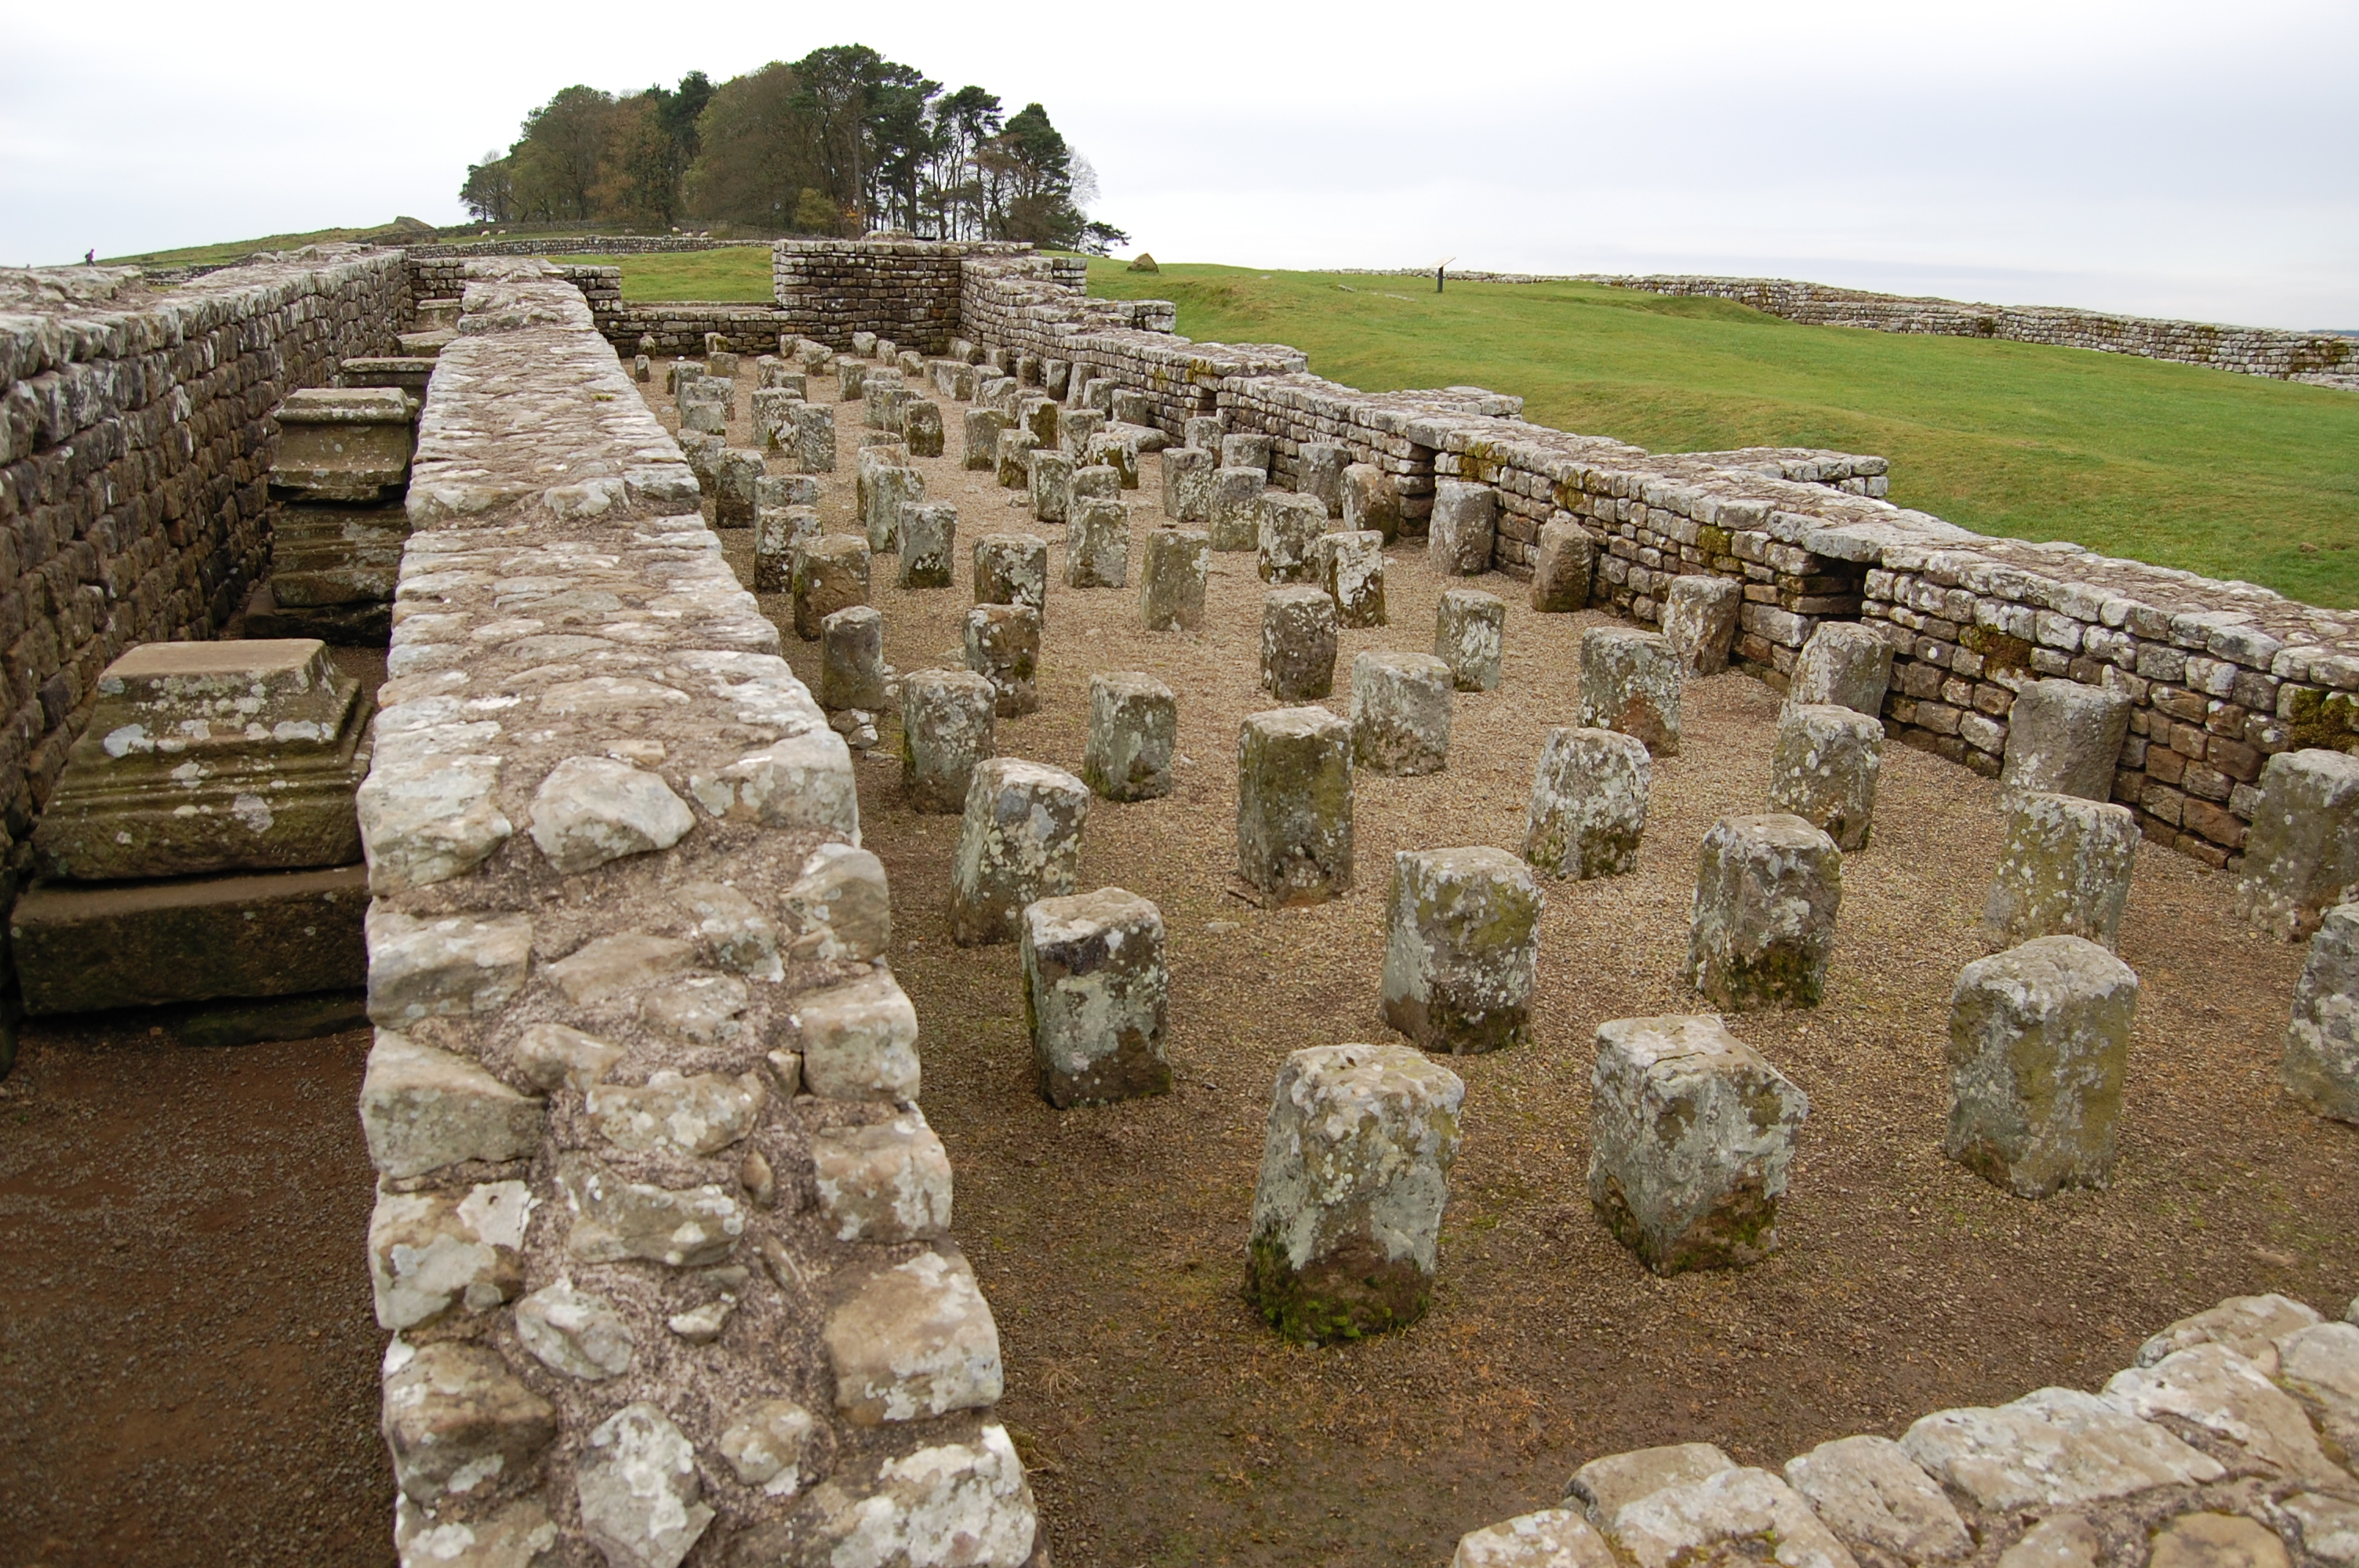 """Oblong building remains with upright stones sticking up where the """"floor"""" should be"""